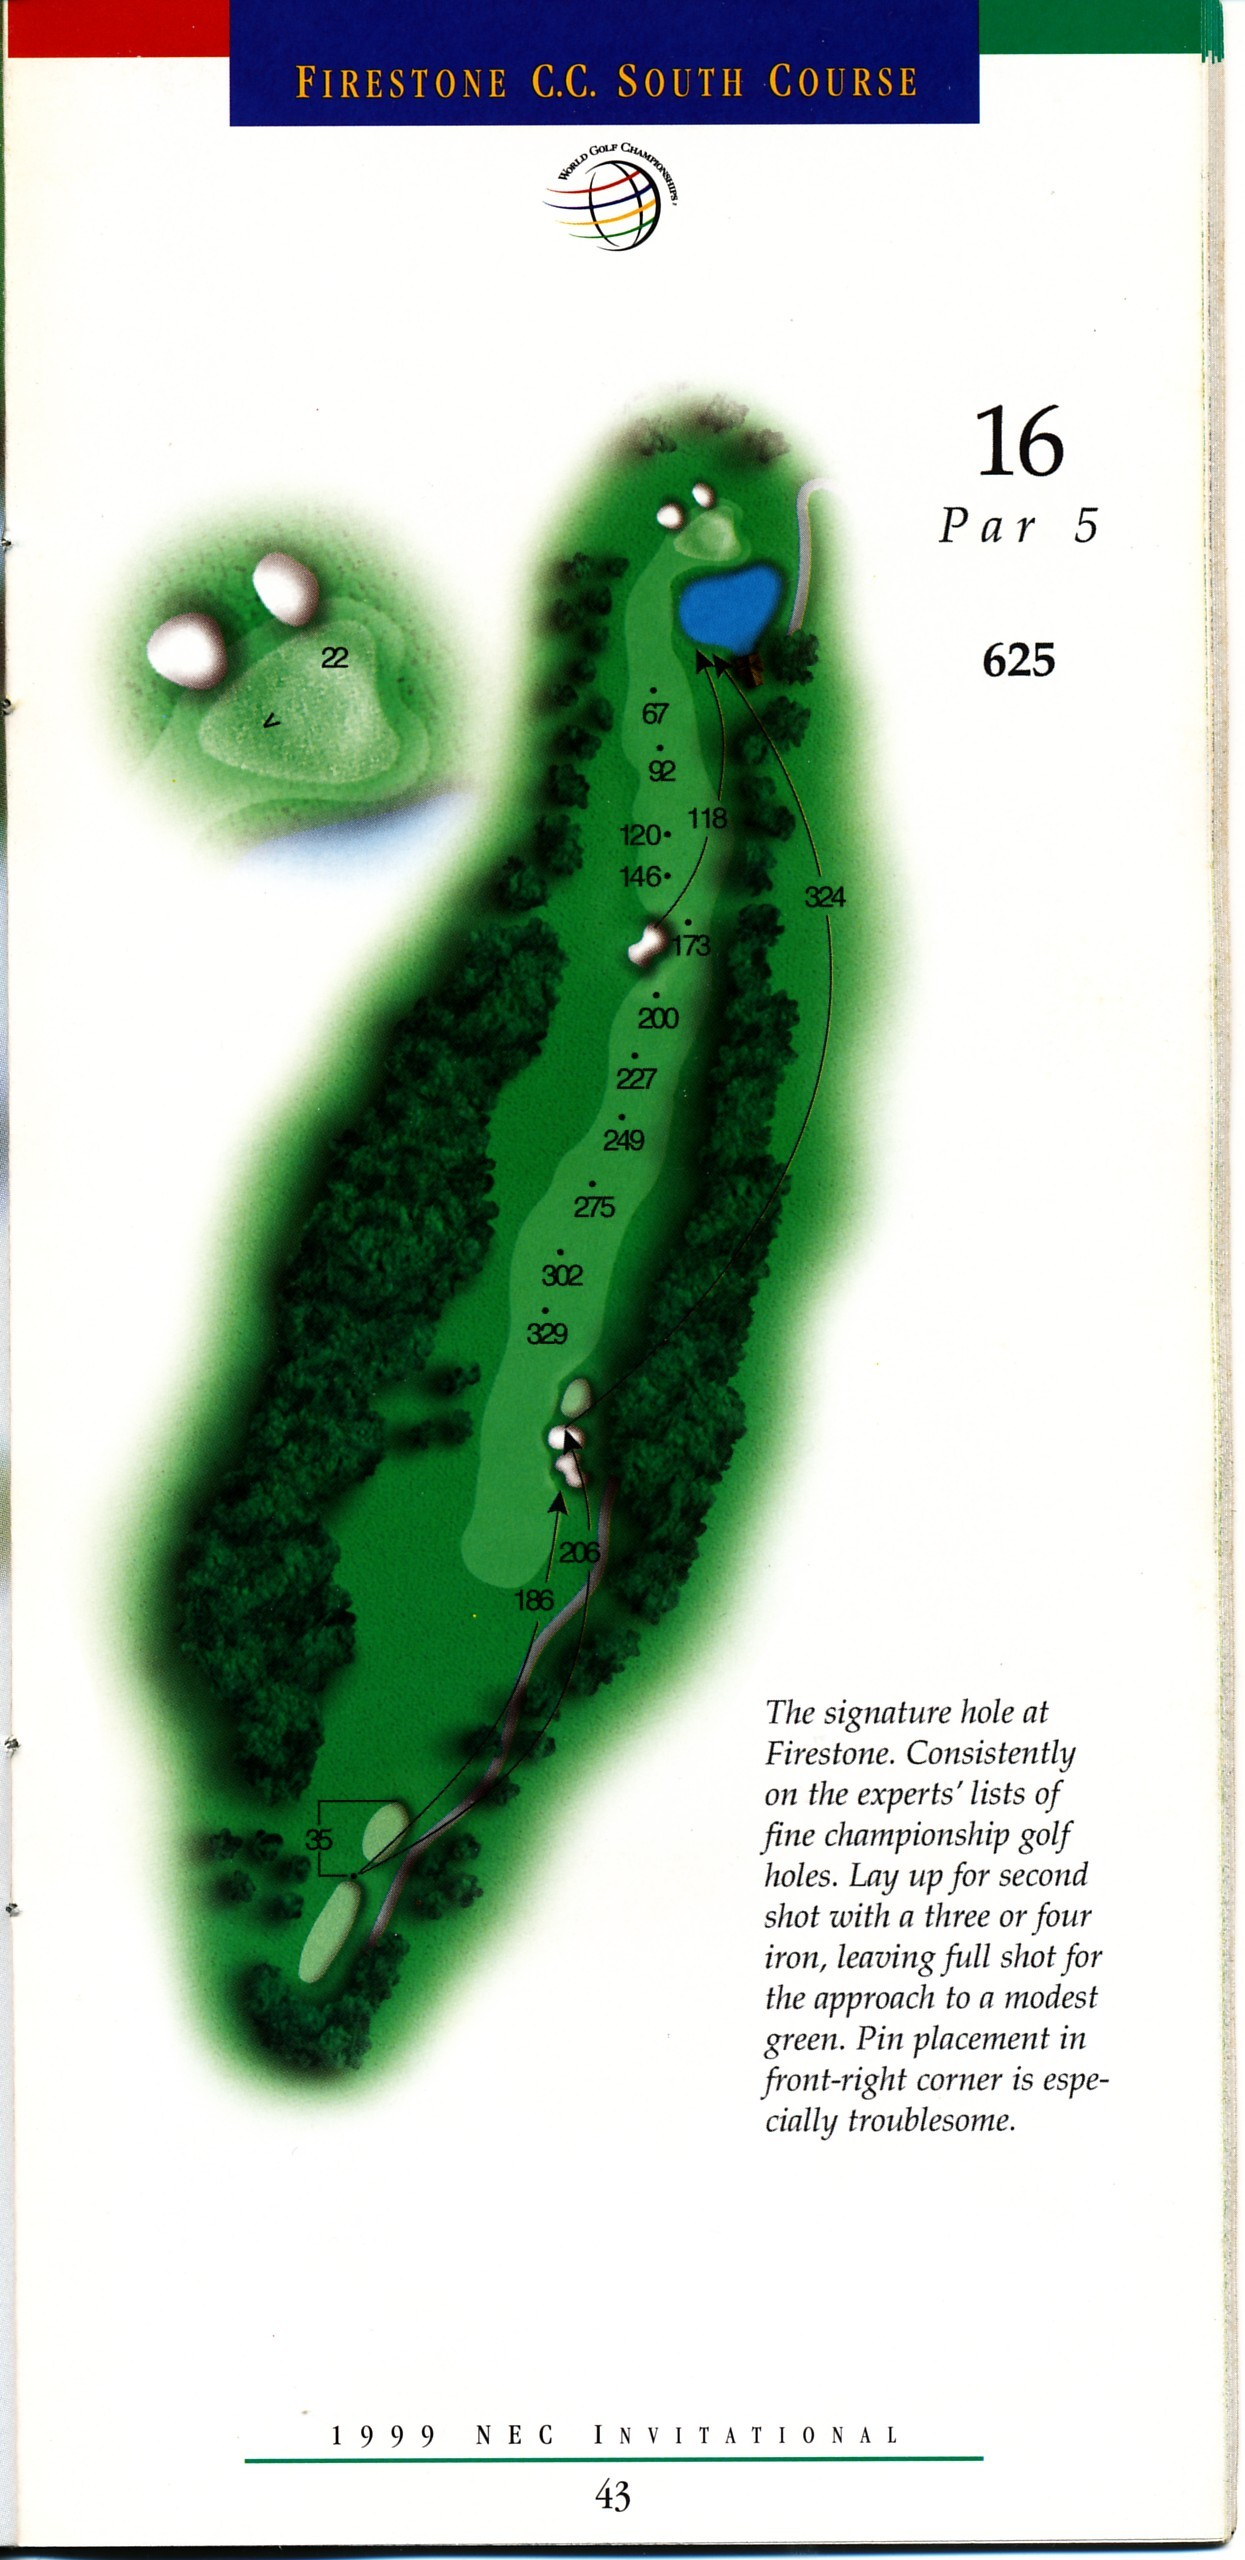 golf_firestone_16th_hole